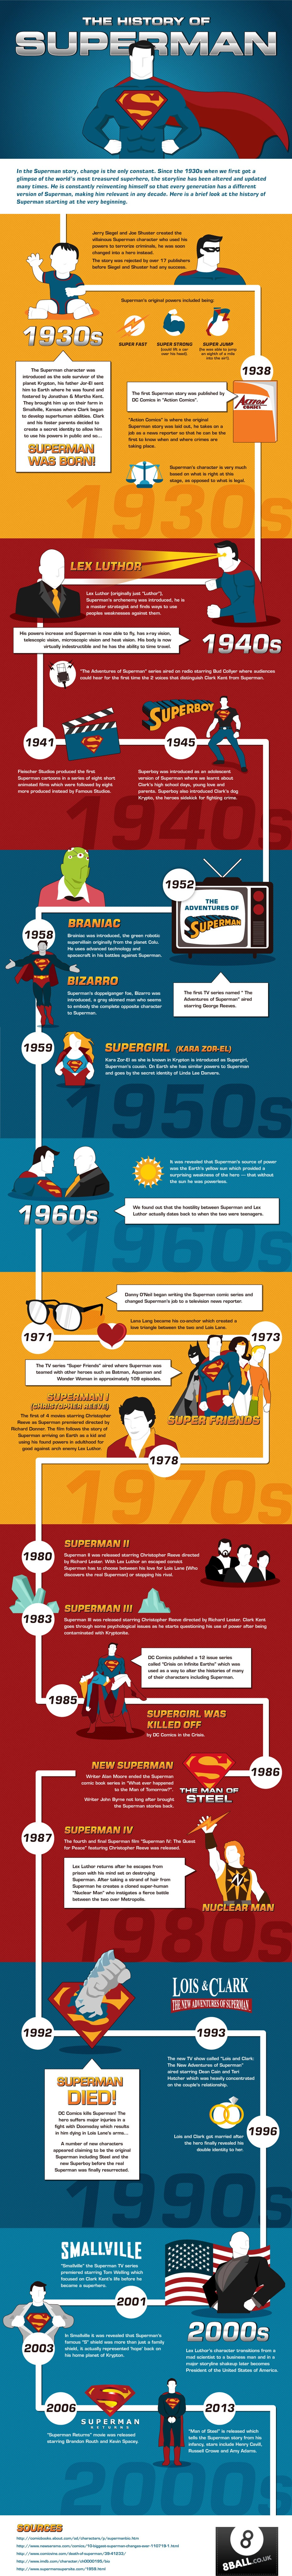 superman_infographic